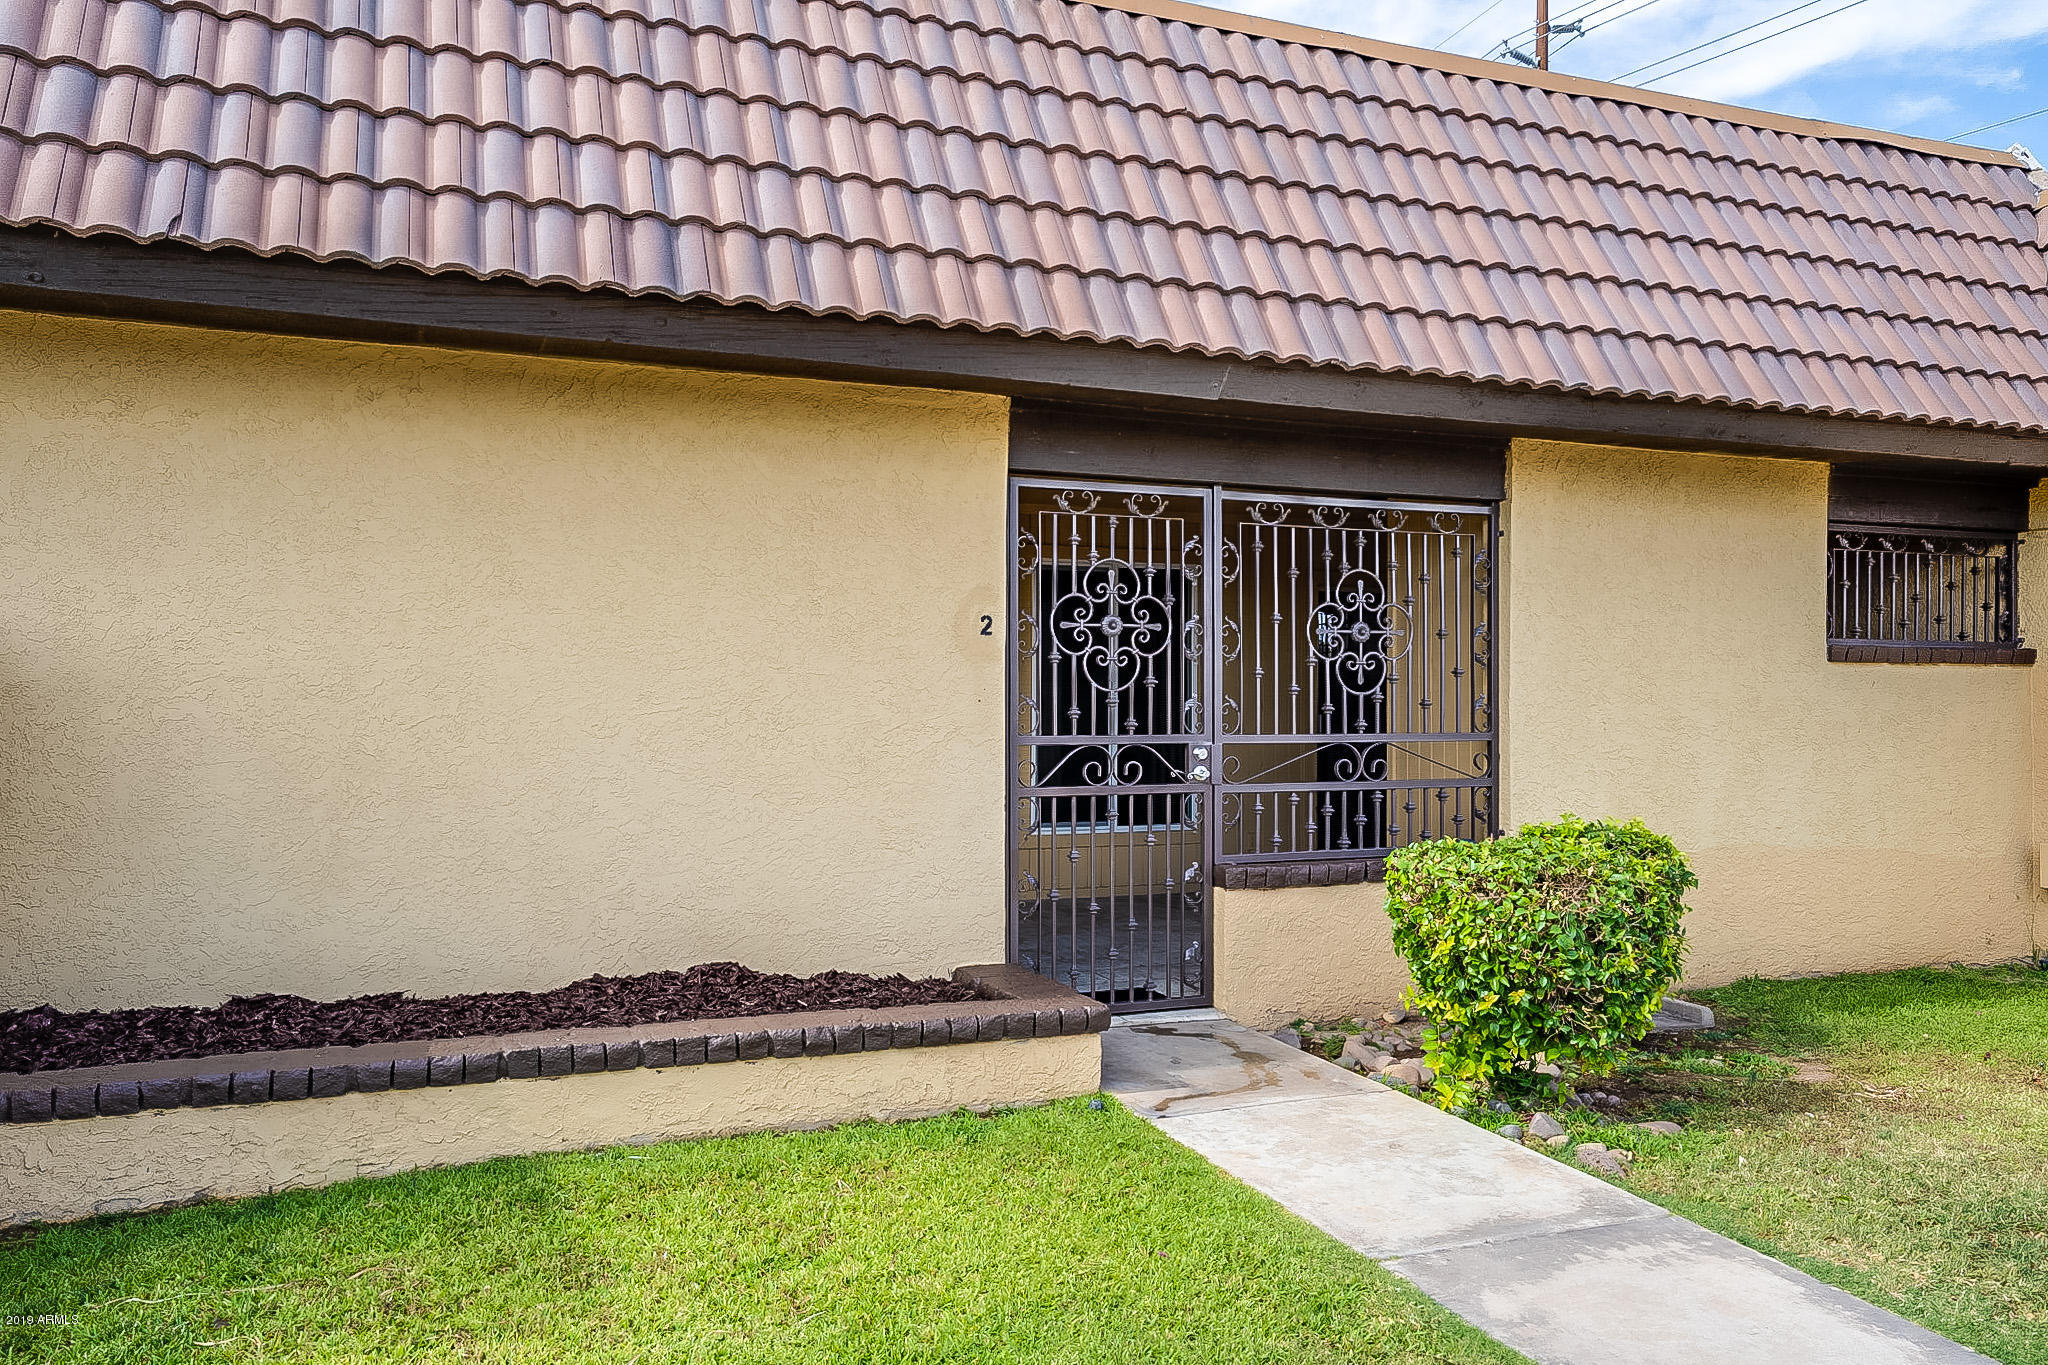 Photo for 9035 W Elm Street, Unit 2, Phoenix, AZ 85037 (MLS # 5939787)